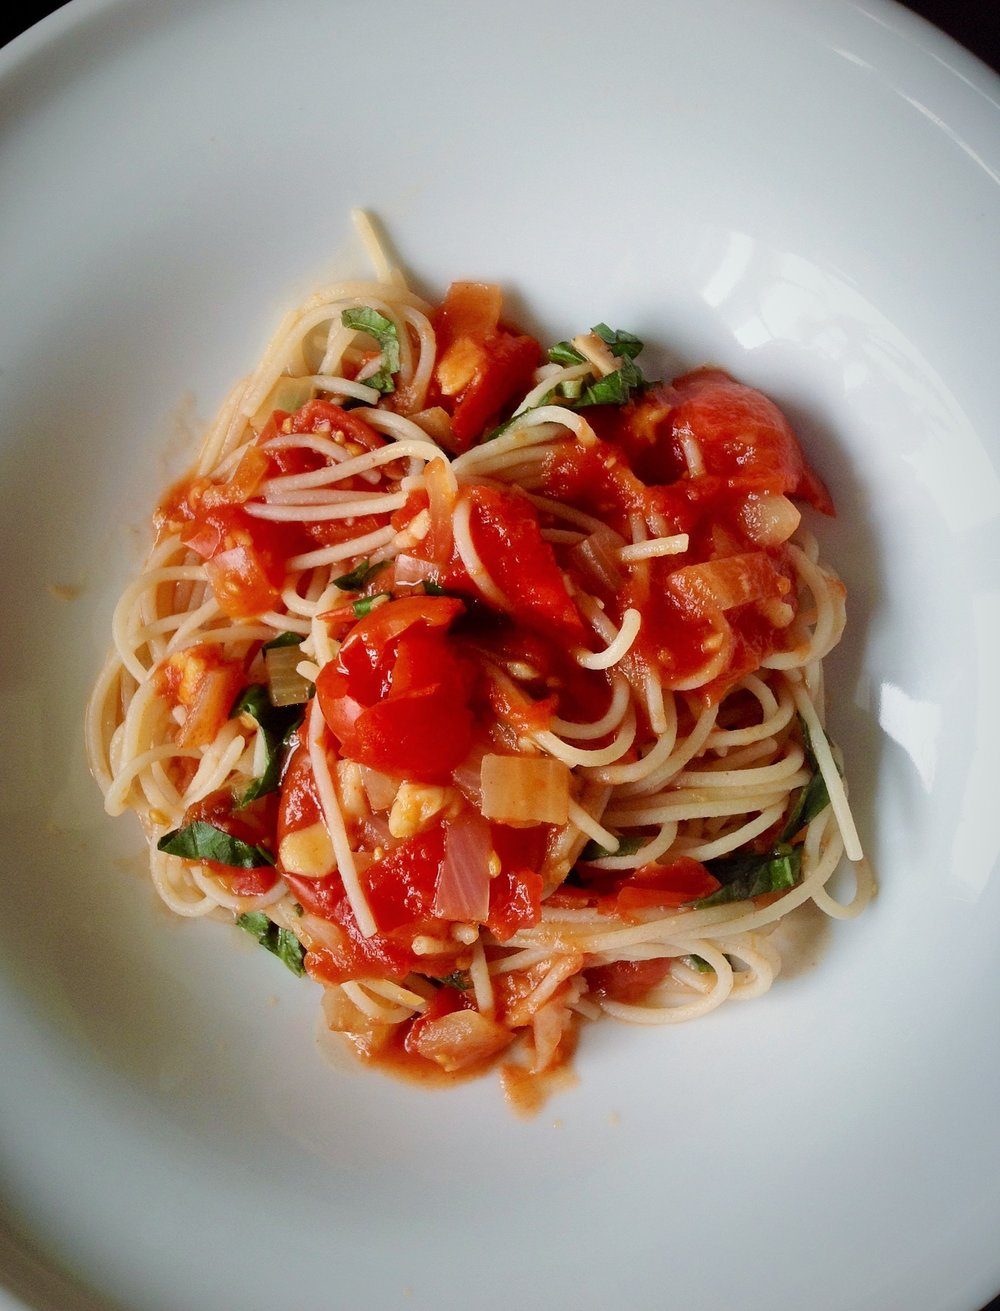 Brown Rice Pasta with Garlic Tomato Sauce - Healthy, Gluten-Free, Oil-Free, Vegan, Plant-Based, Italian DInner